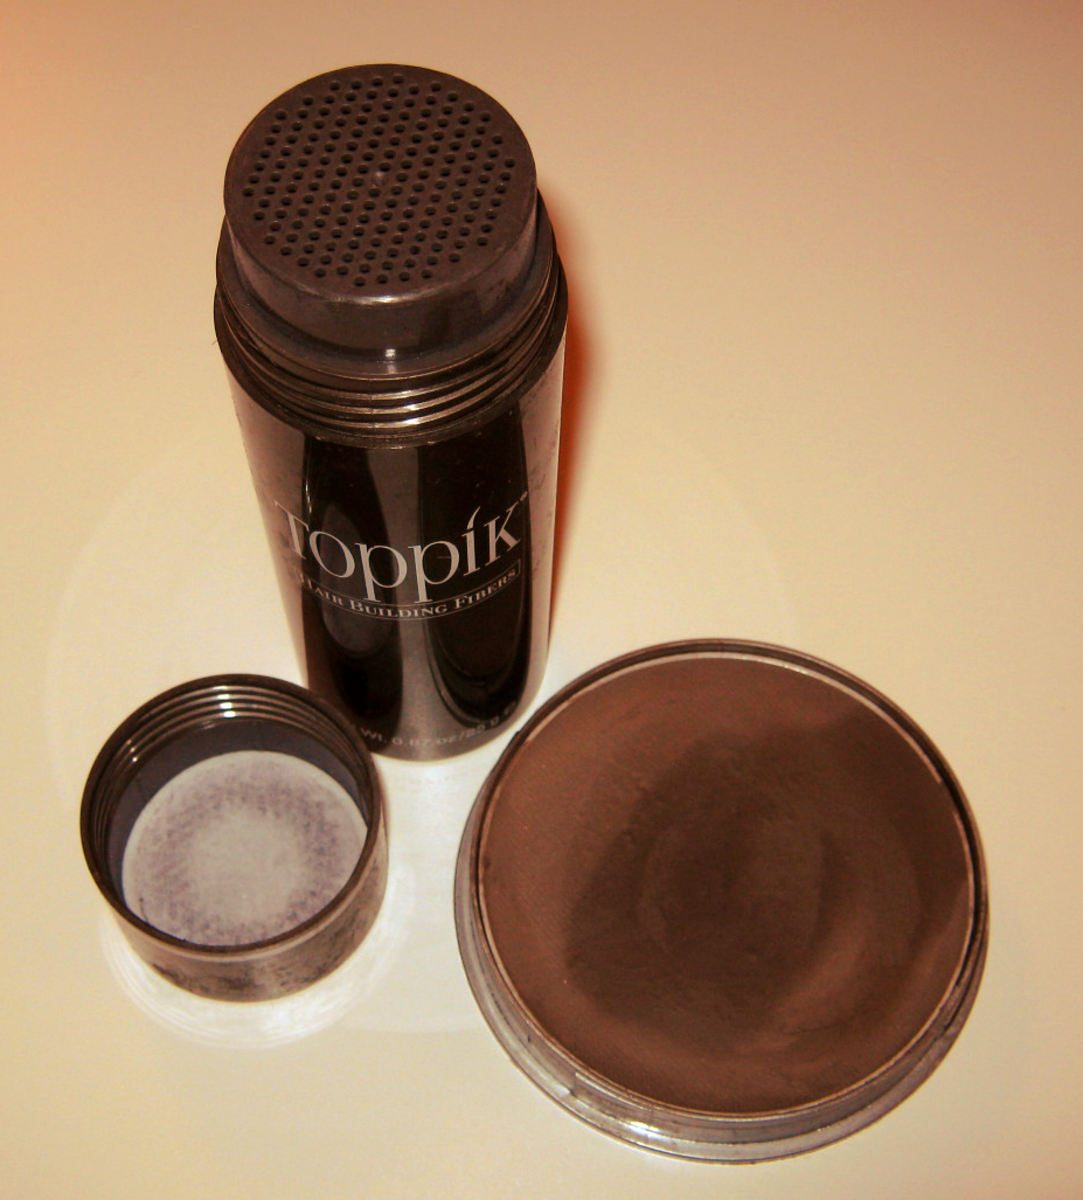 Hair building fibers in a shaker container (left) and water-activated hair loss concealer (right).